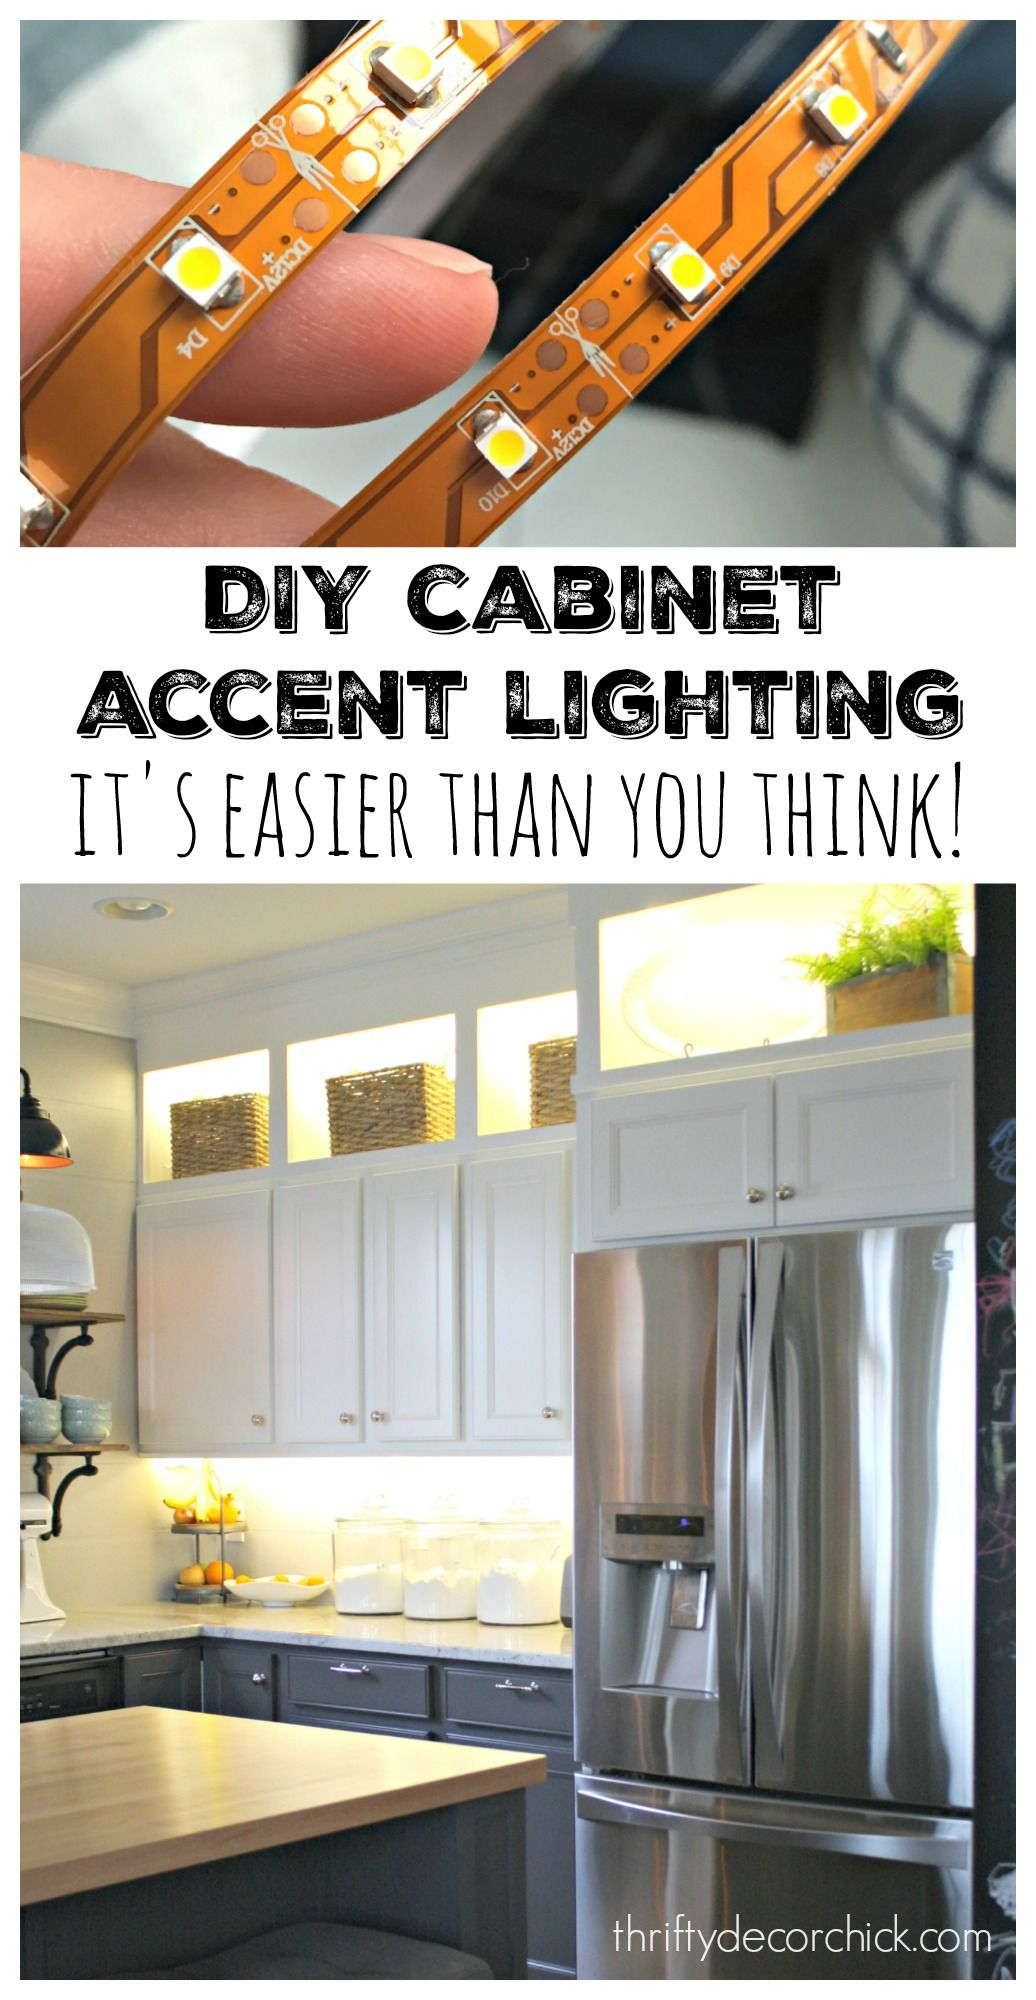 How To Add Upper And Lower Accent Lighting Cabinets In Kitchen